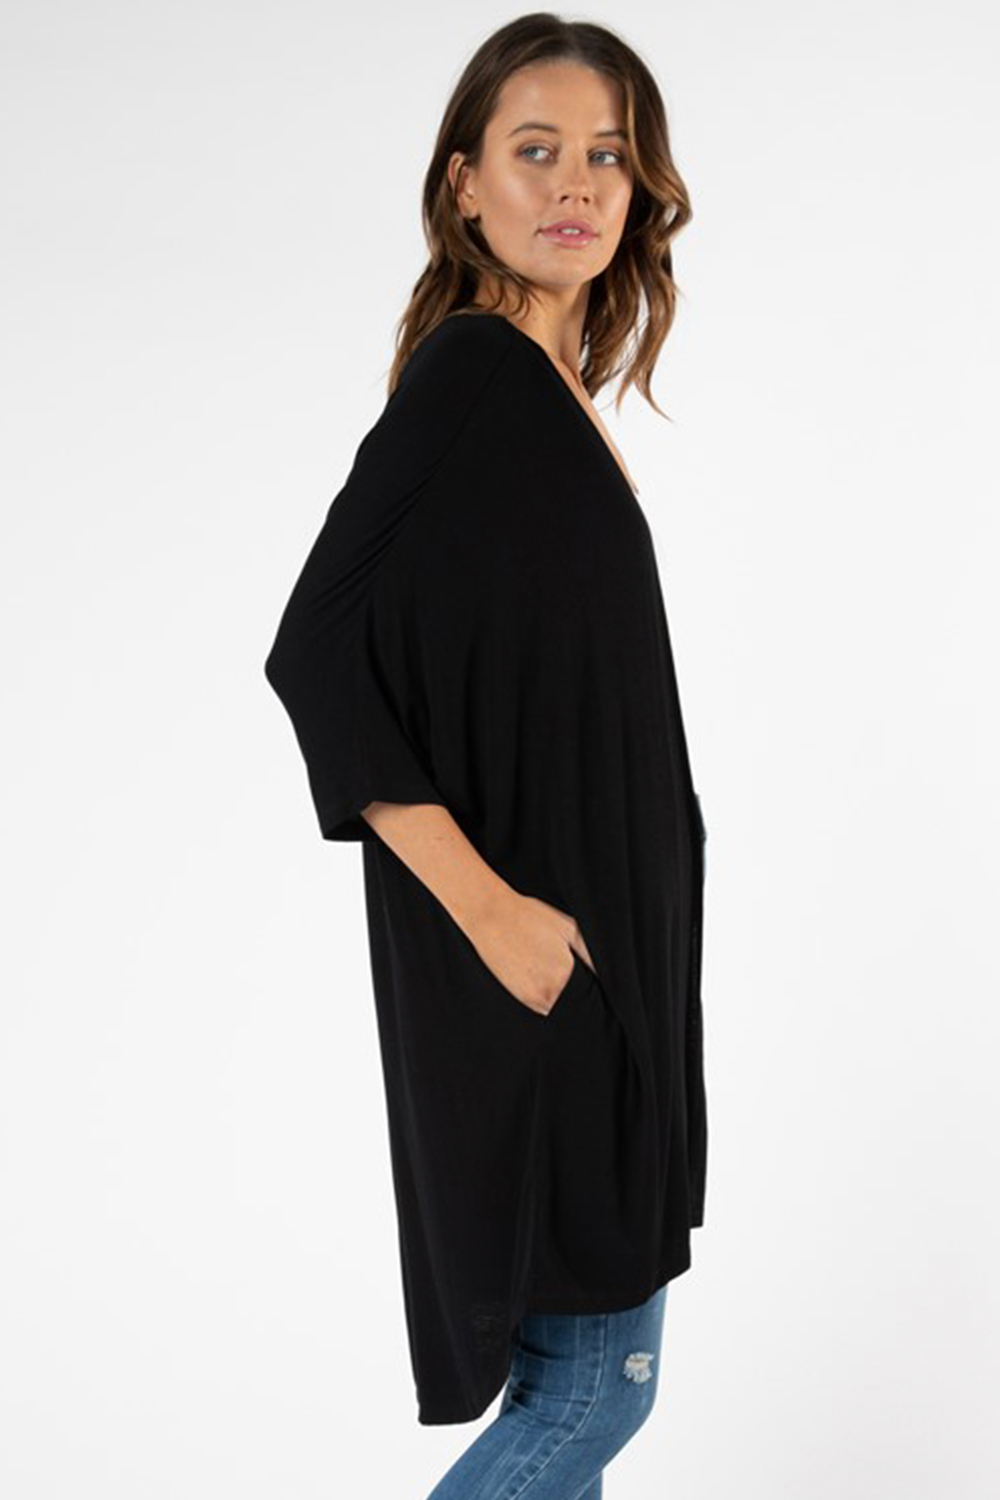 Valencia Cardigan by Betty Basics - Black